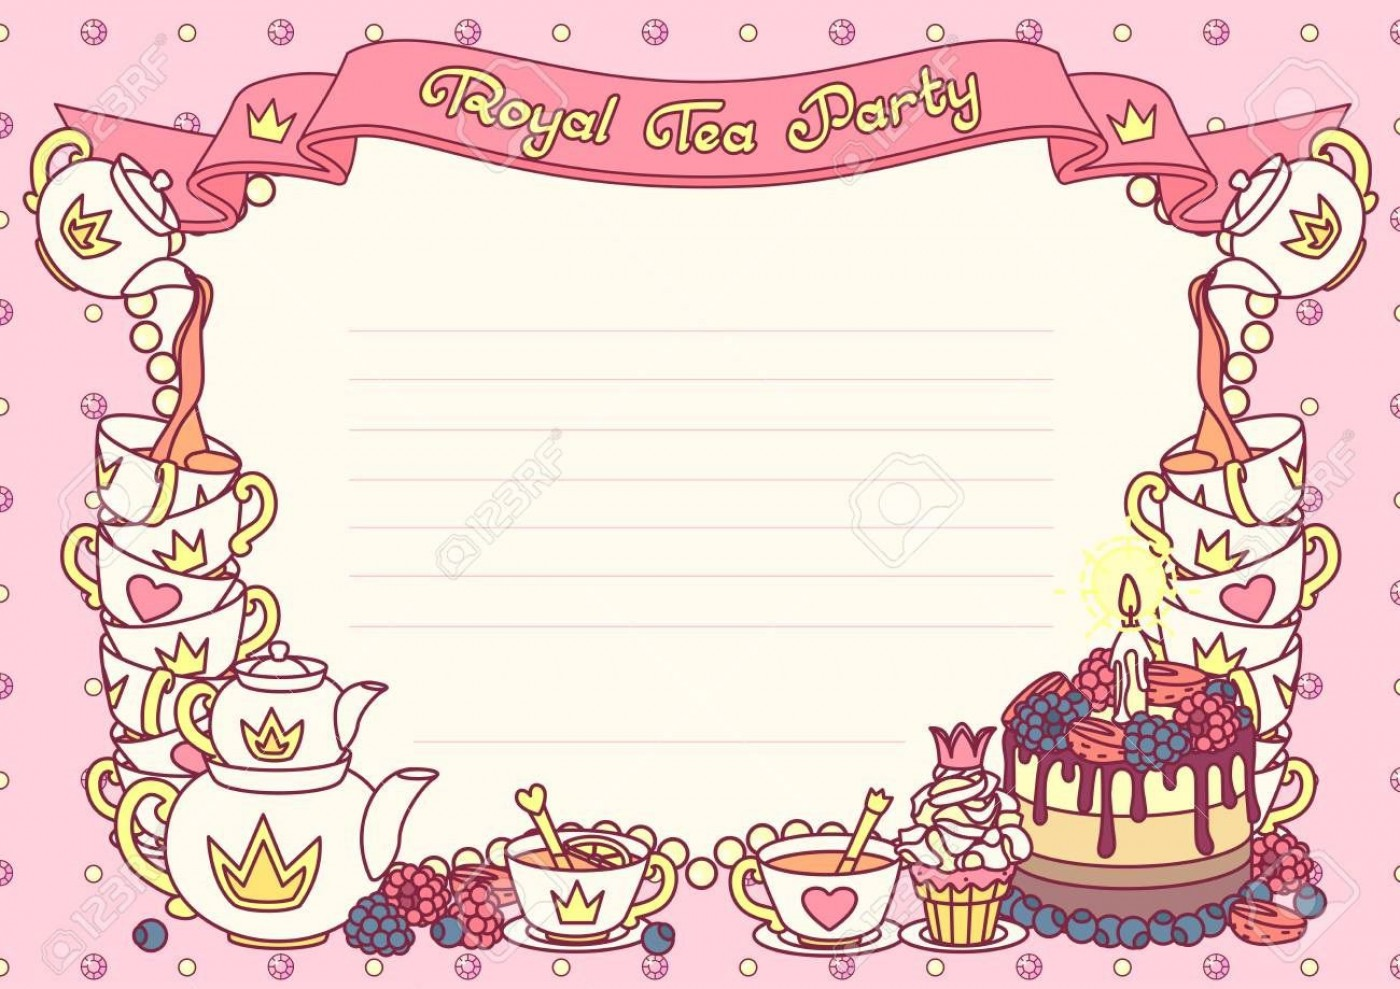 005 Rare Tea Party Invitation Template Image  Vintage Free Editable Card Pdf1400